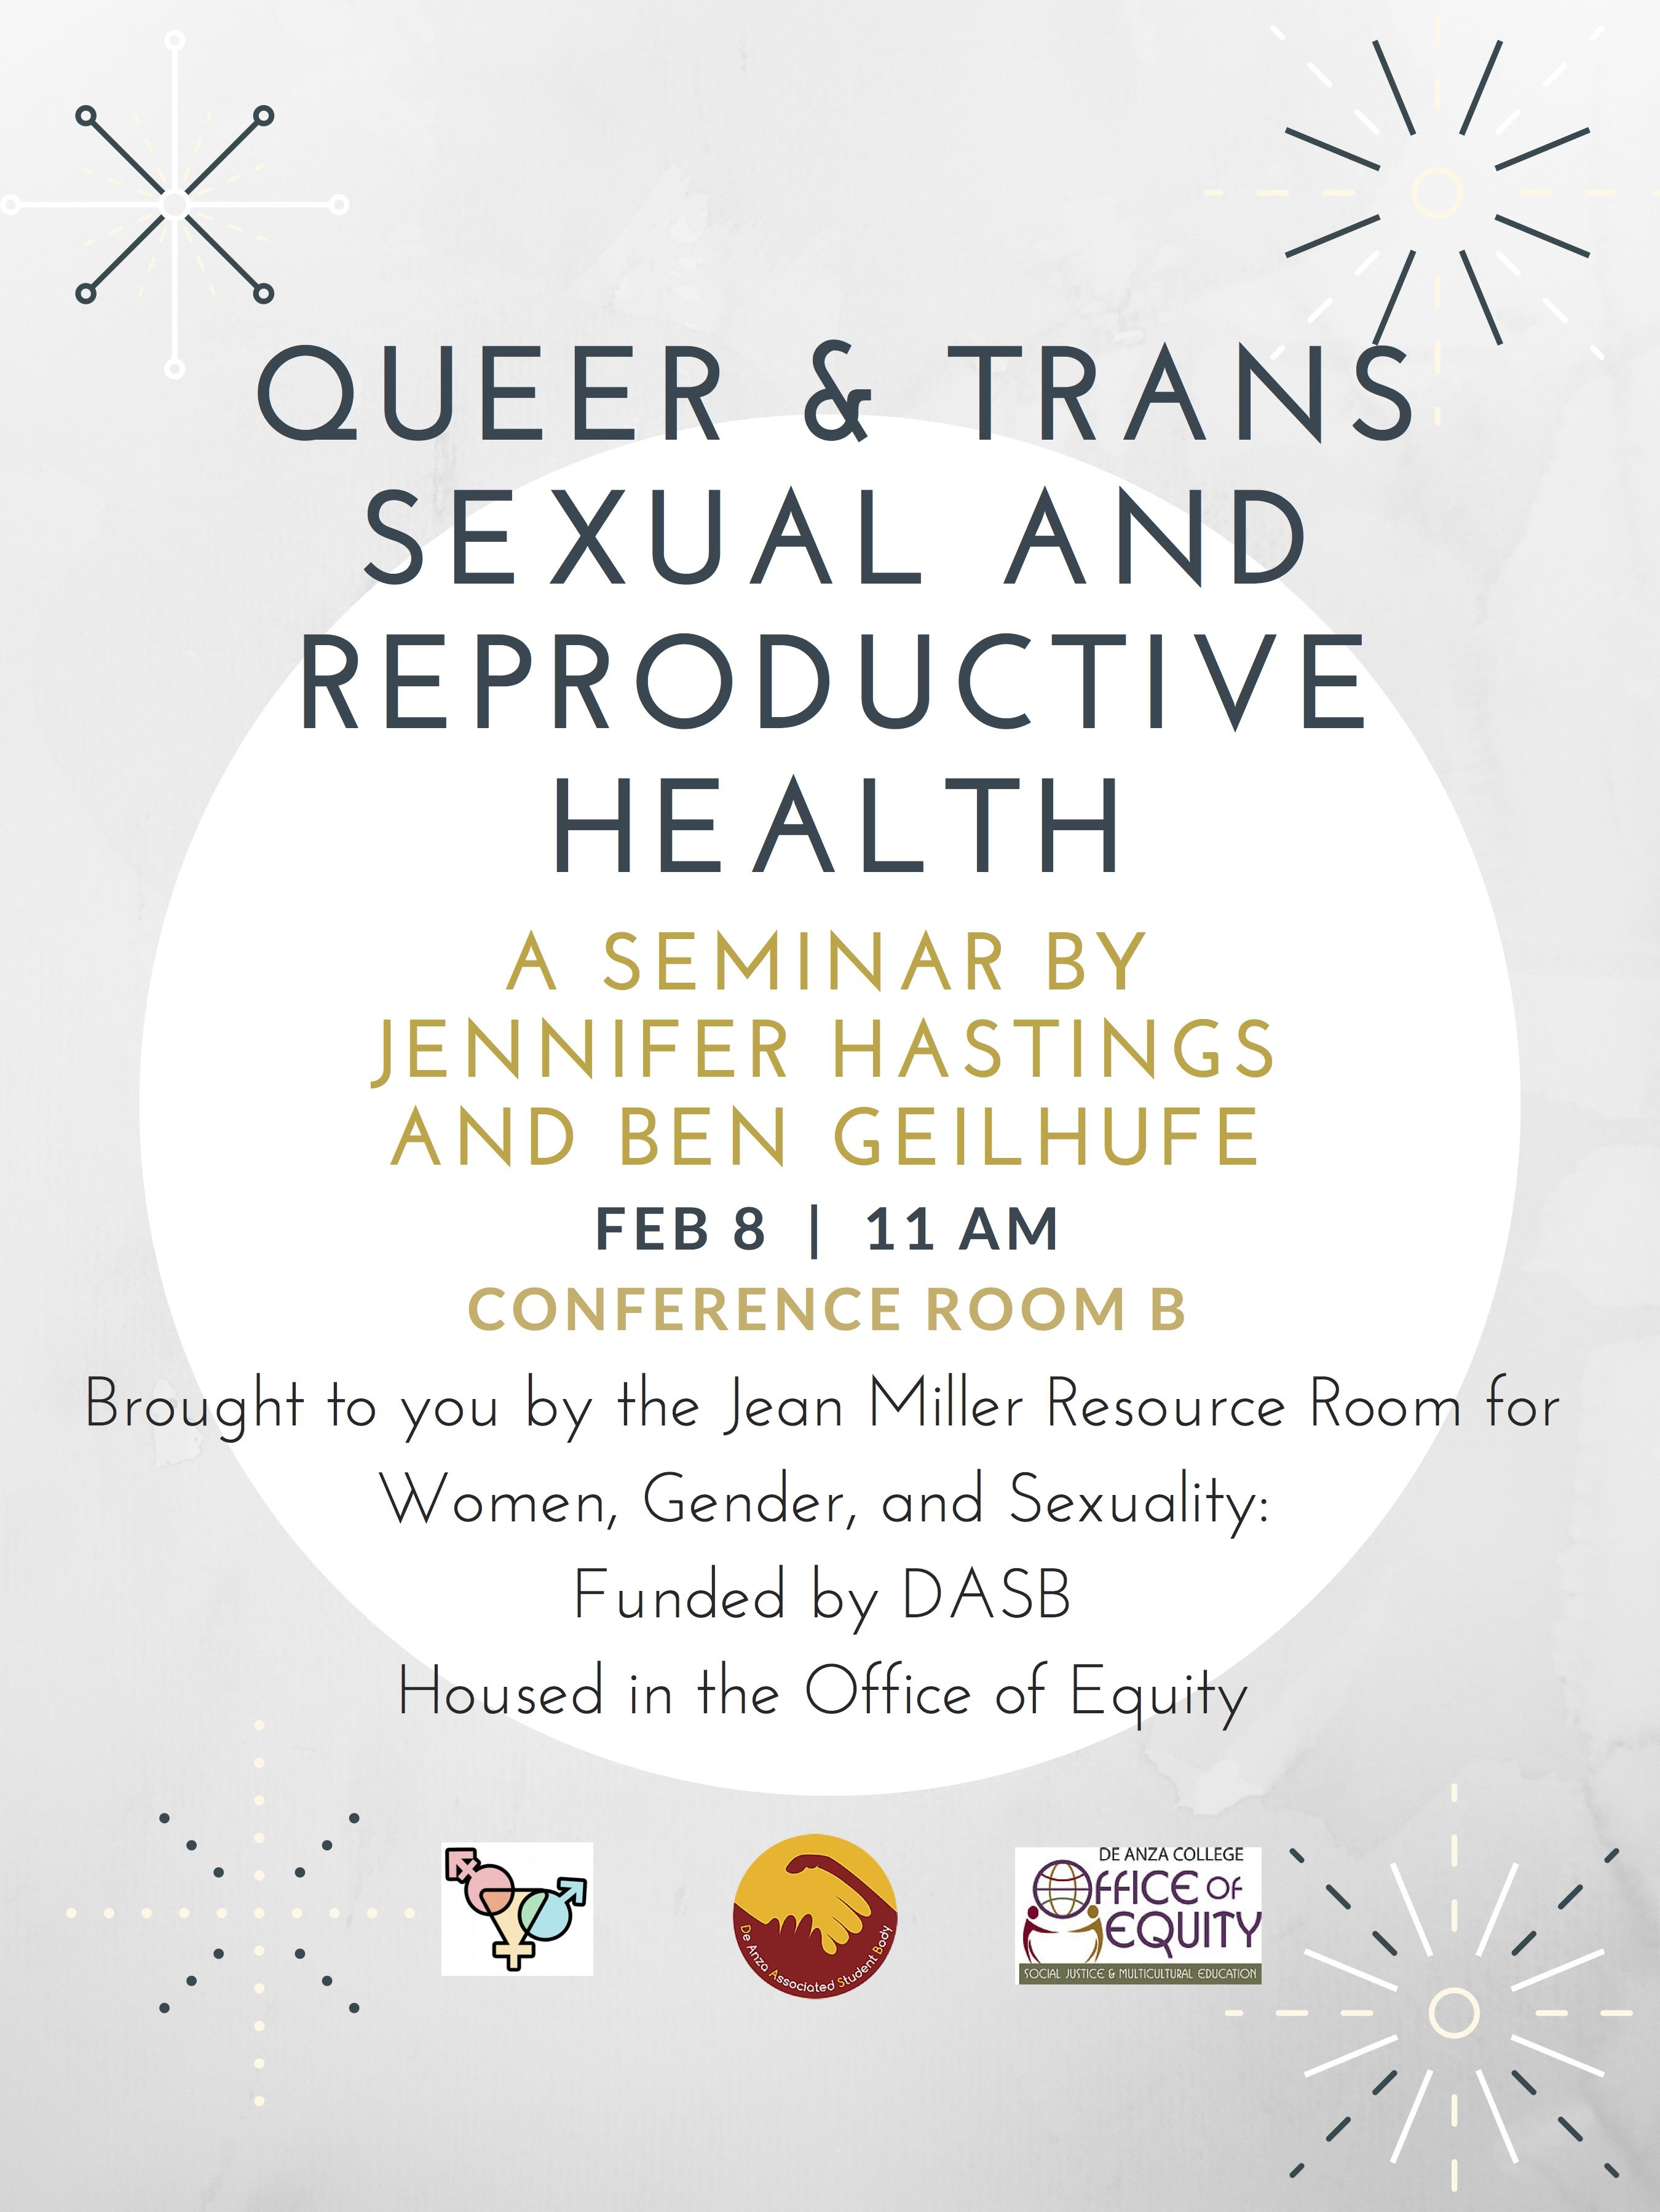 Queer & Trans Sexual and Reproductive Health Seminar